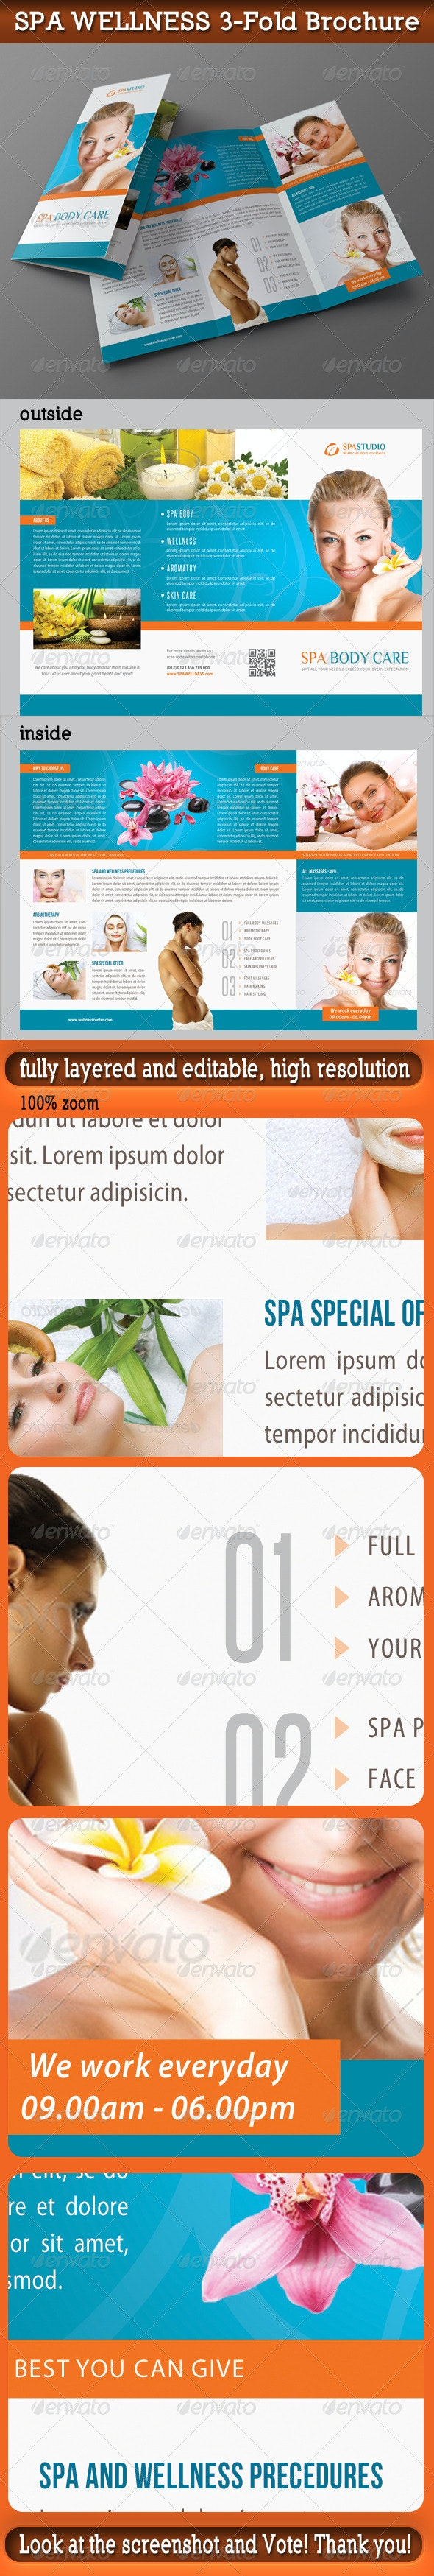 Spa Wellness 3-Fold Brochure 03 - Informational Brochures